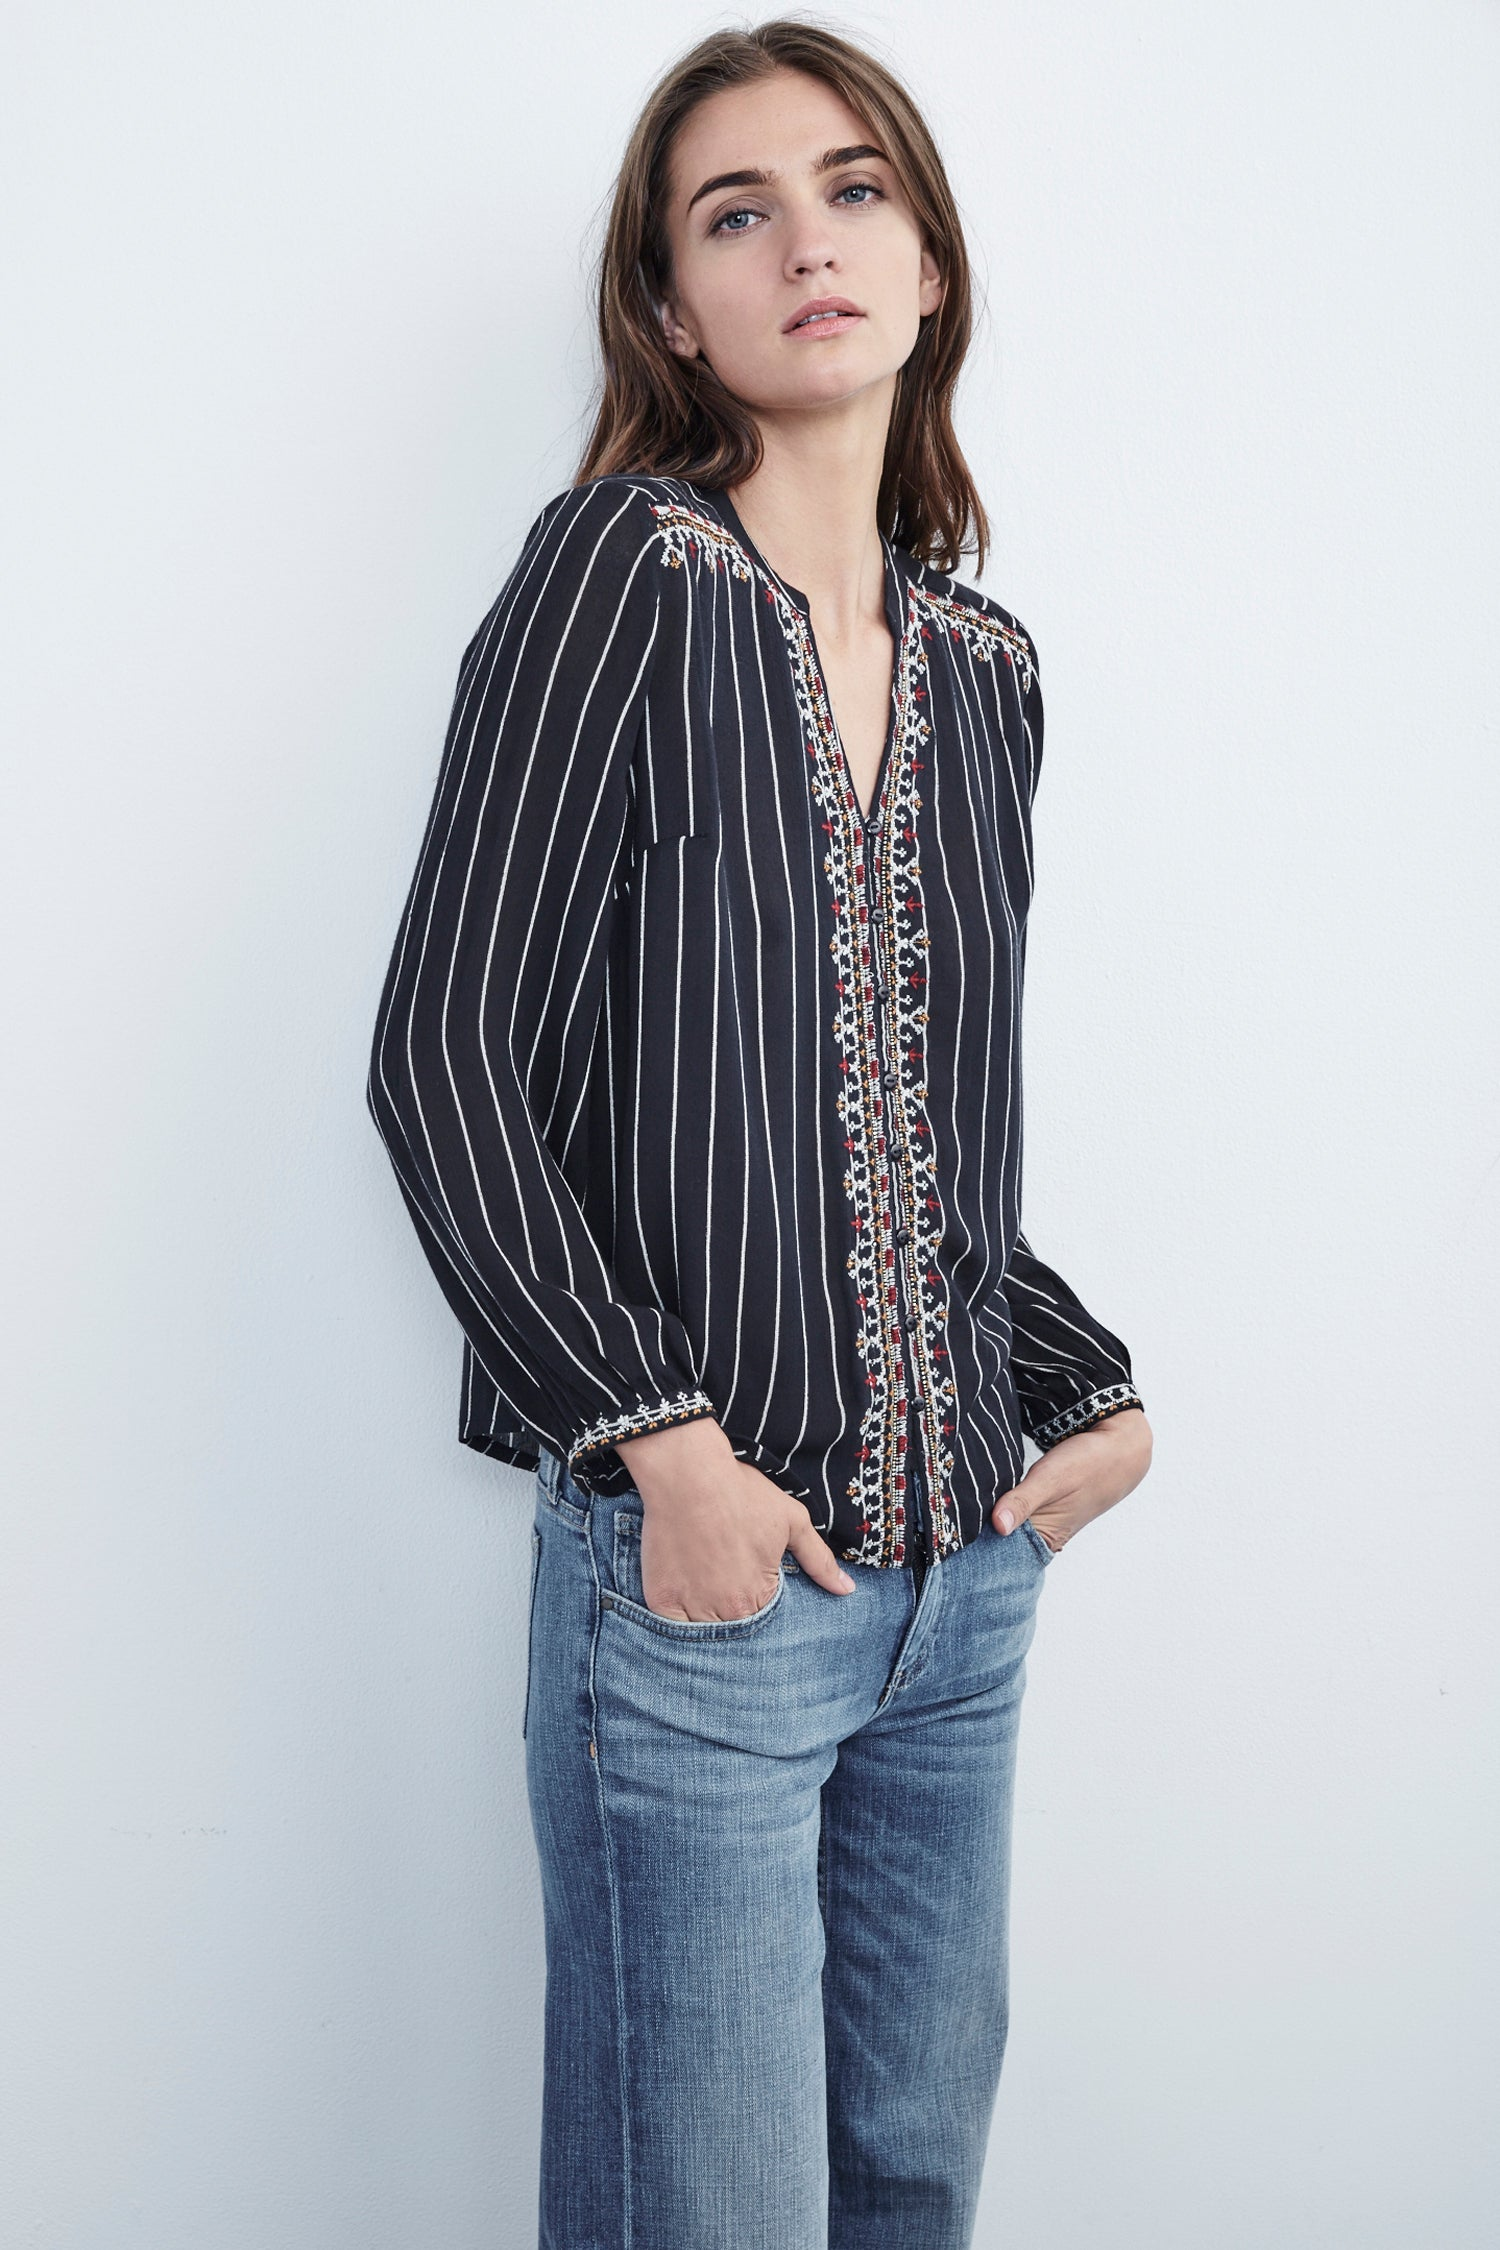 REMI BEADED BUTTON UP TOP IN STRIPE